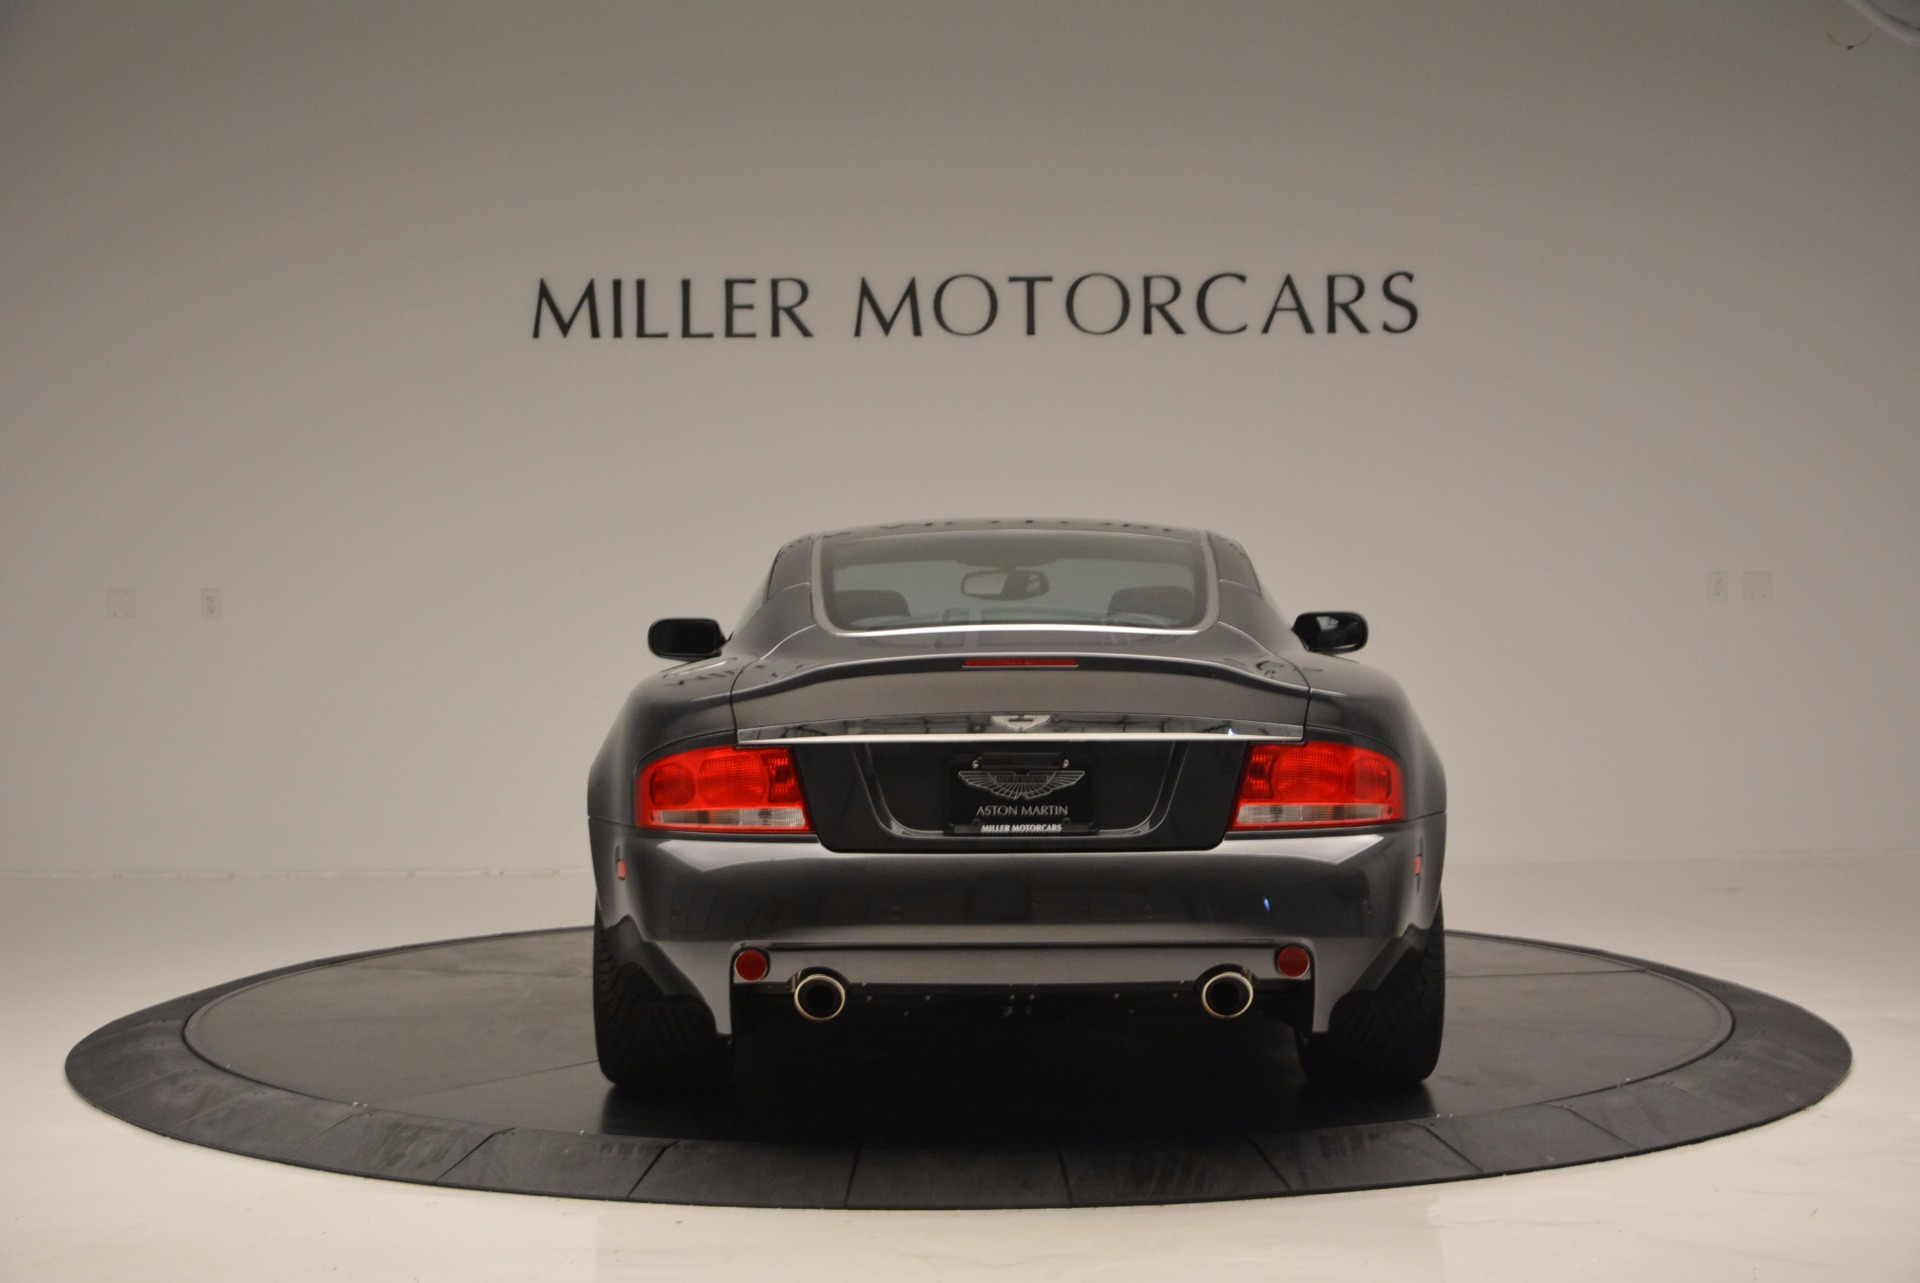 Used 2005 Aston Martin V12 Vanquish S For Sale In Greenwich, CT. Alfa Romeo of Greenwich, 7097 645_p6